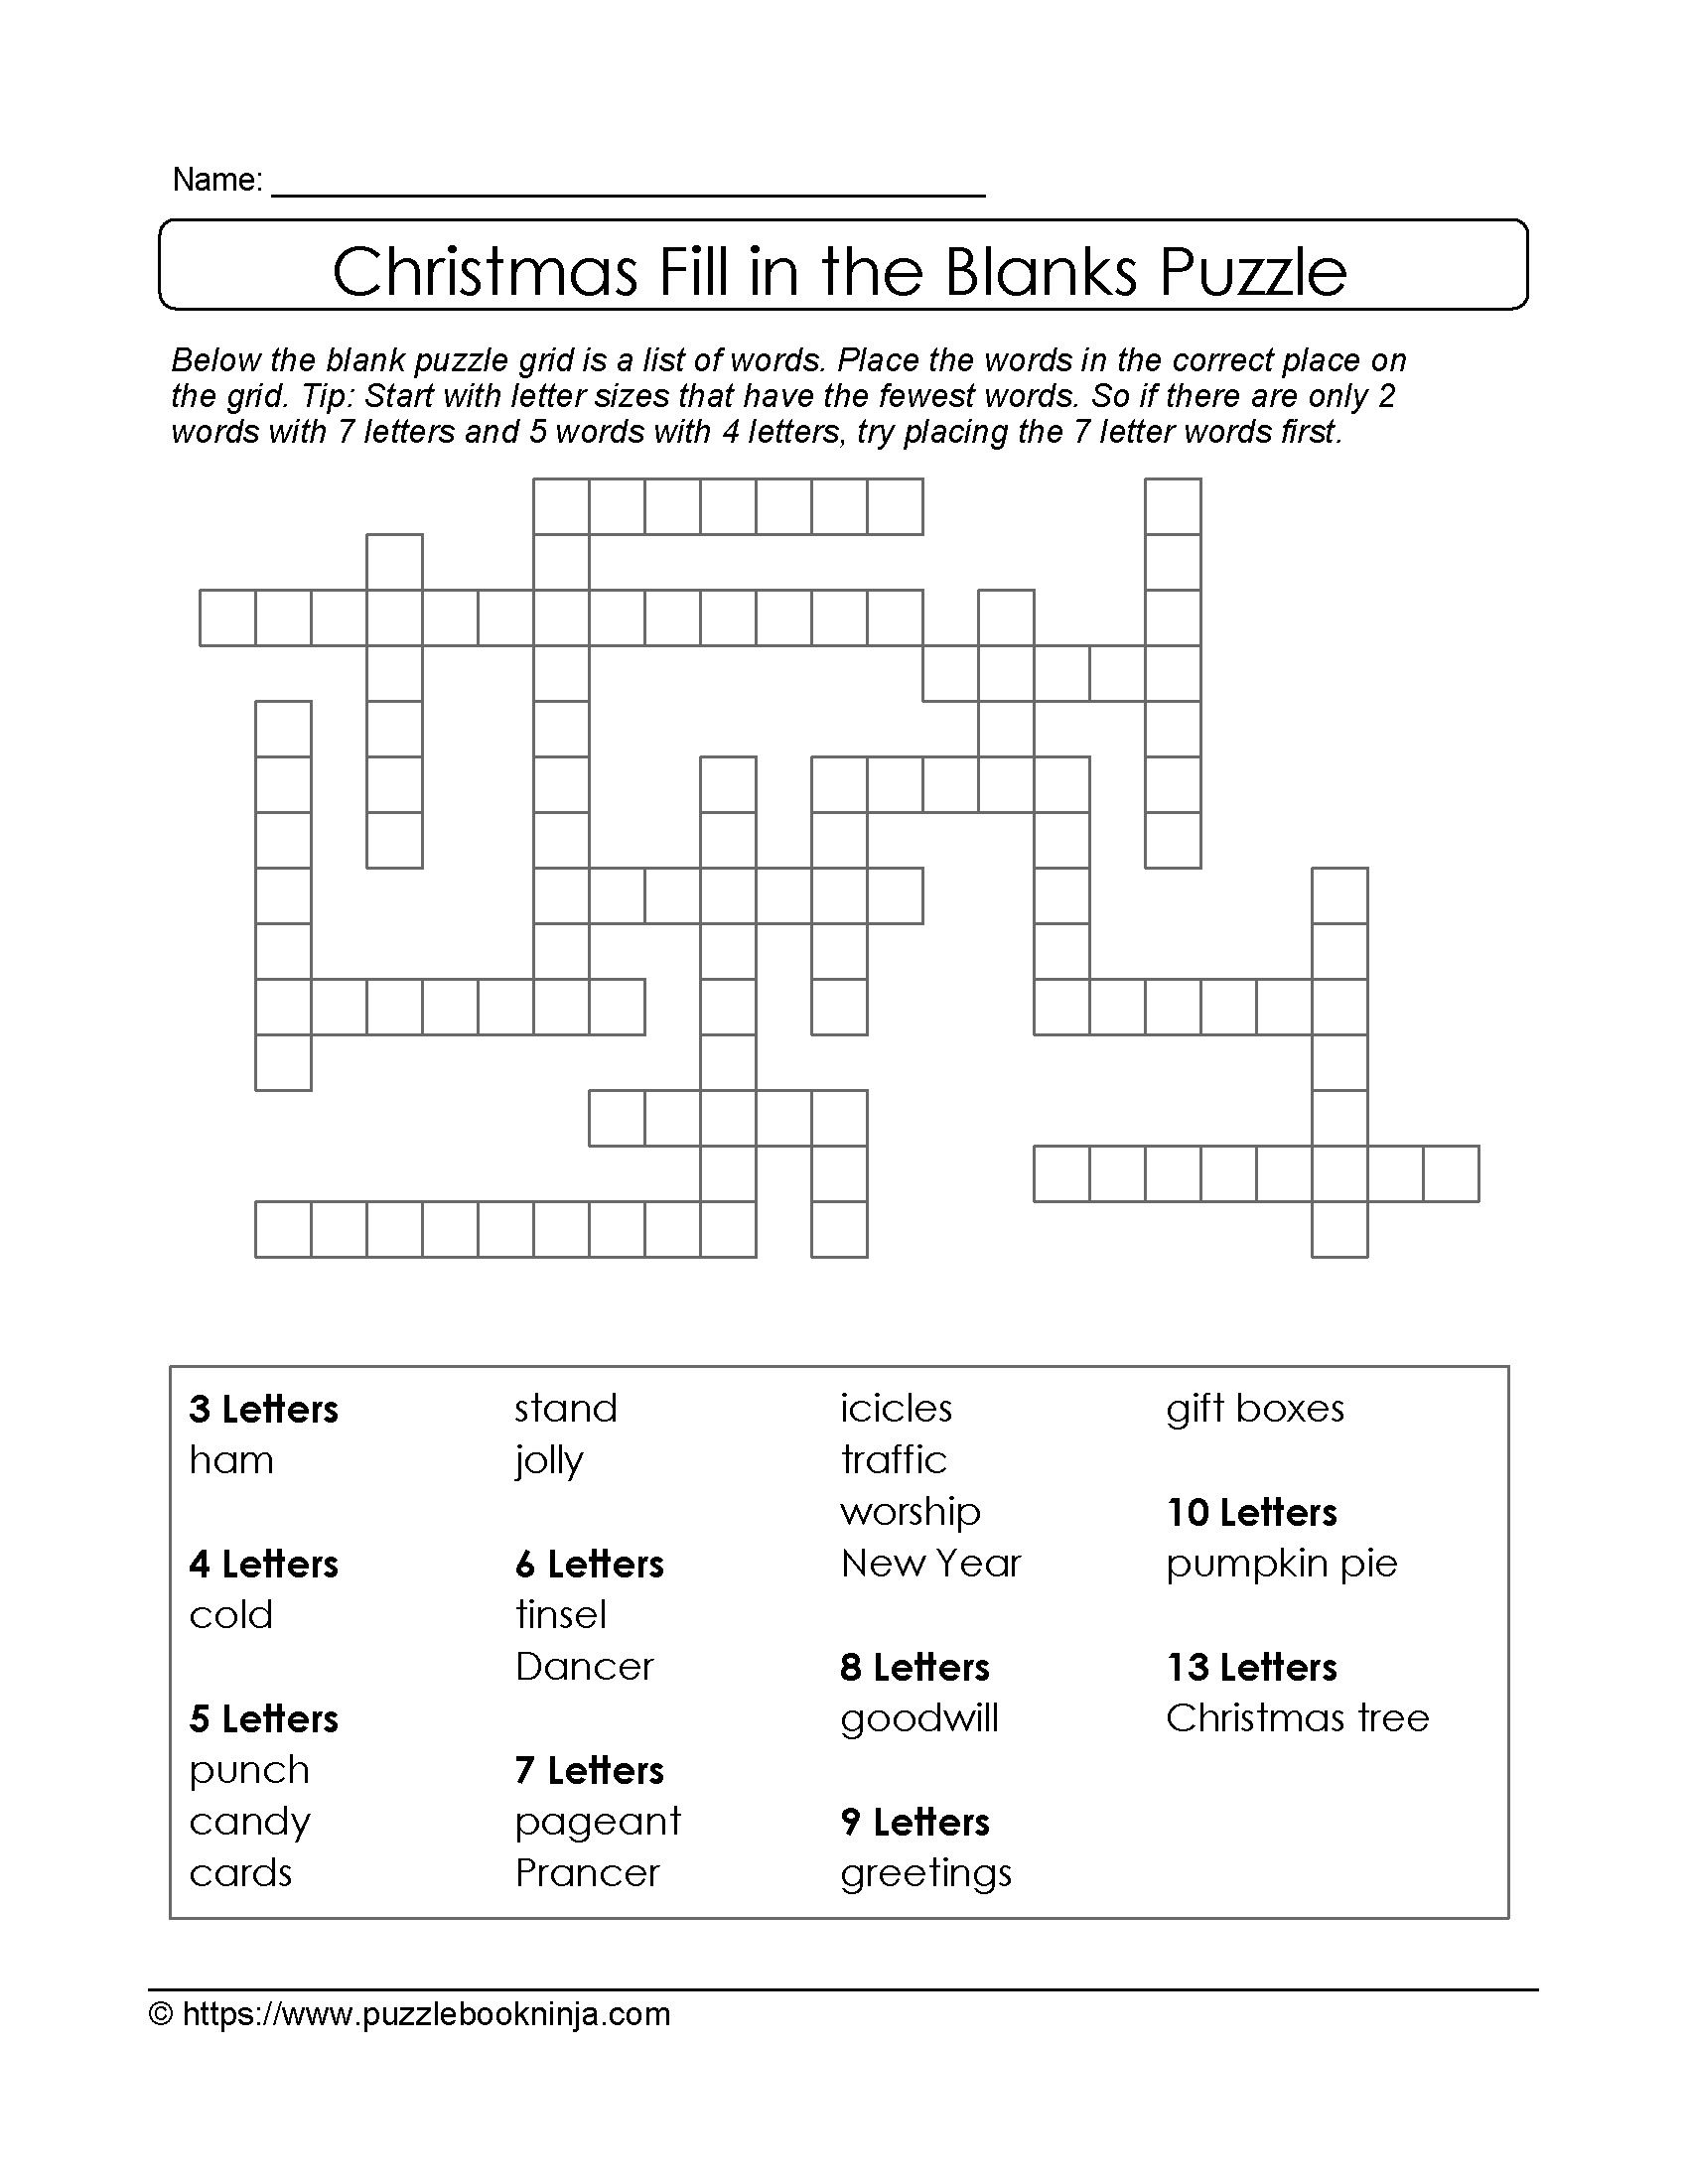 Freebie Xmas Puzzle To Print. Fill In The Blanks Crossword Like - Printable Xmas Crossword Puzzles